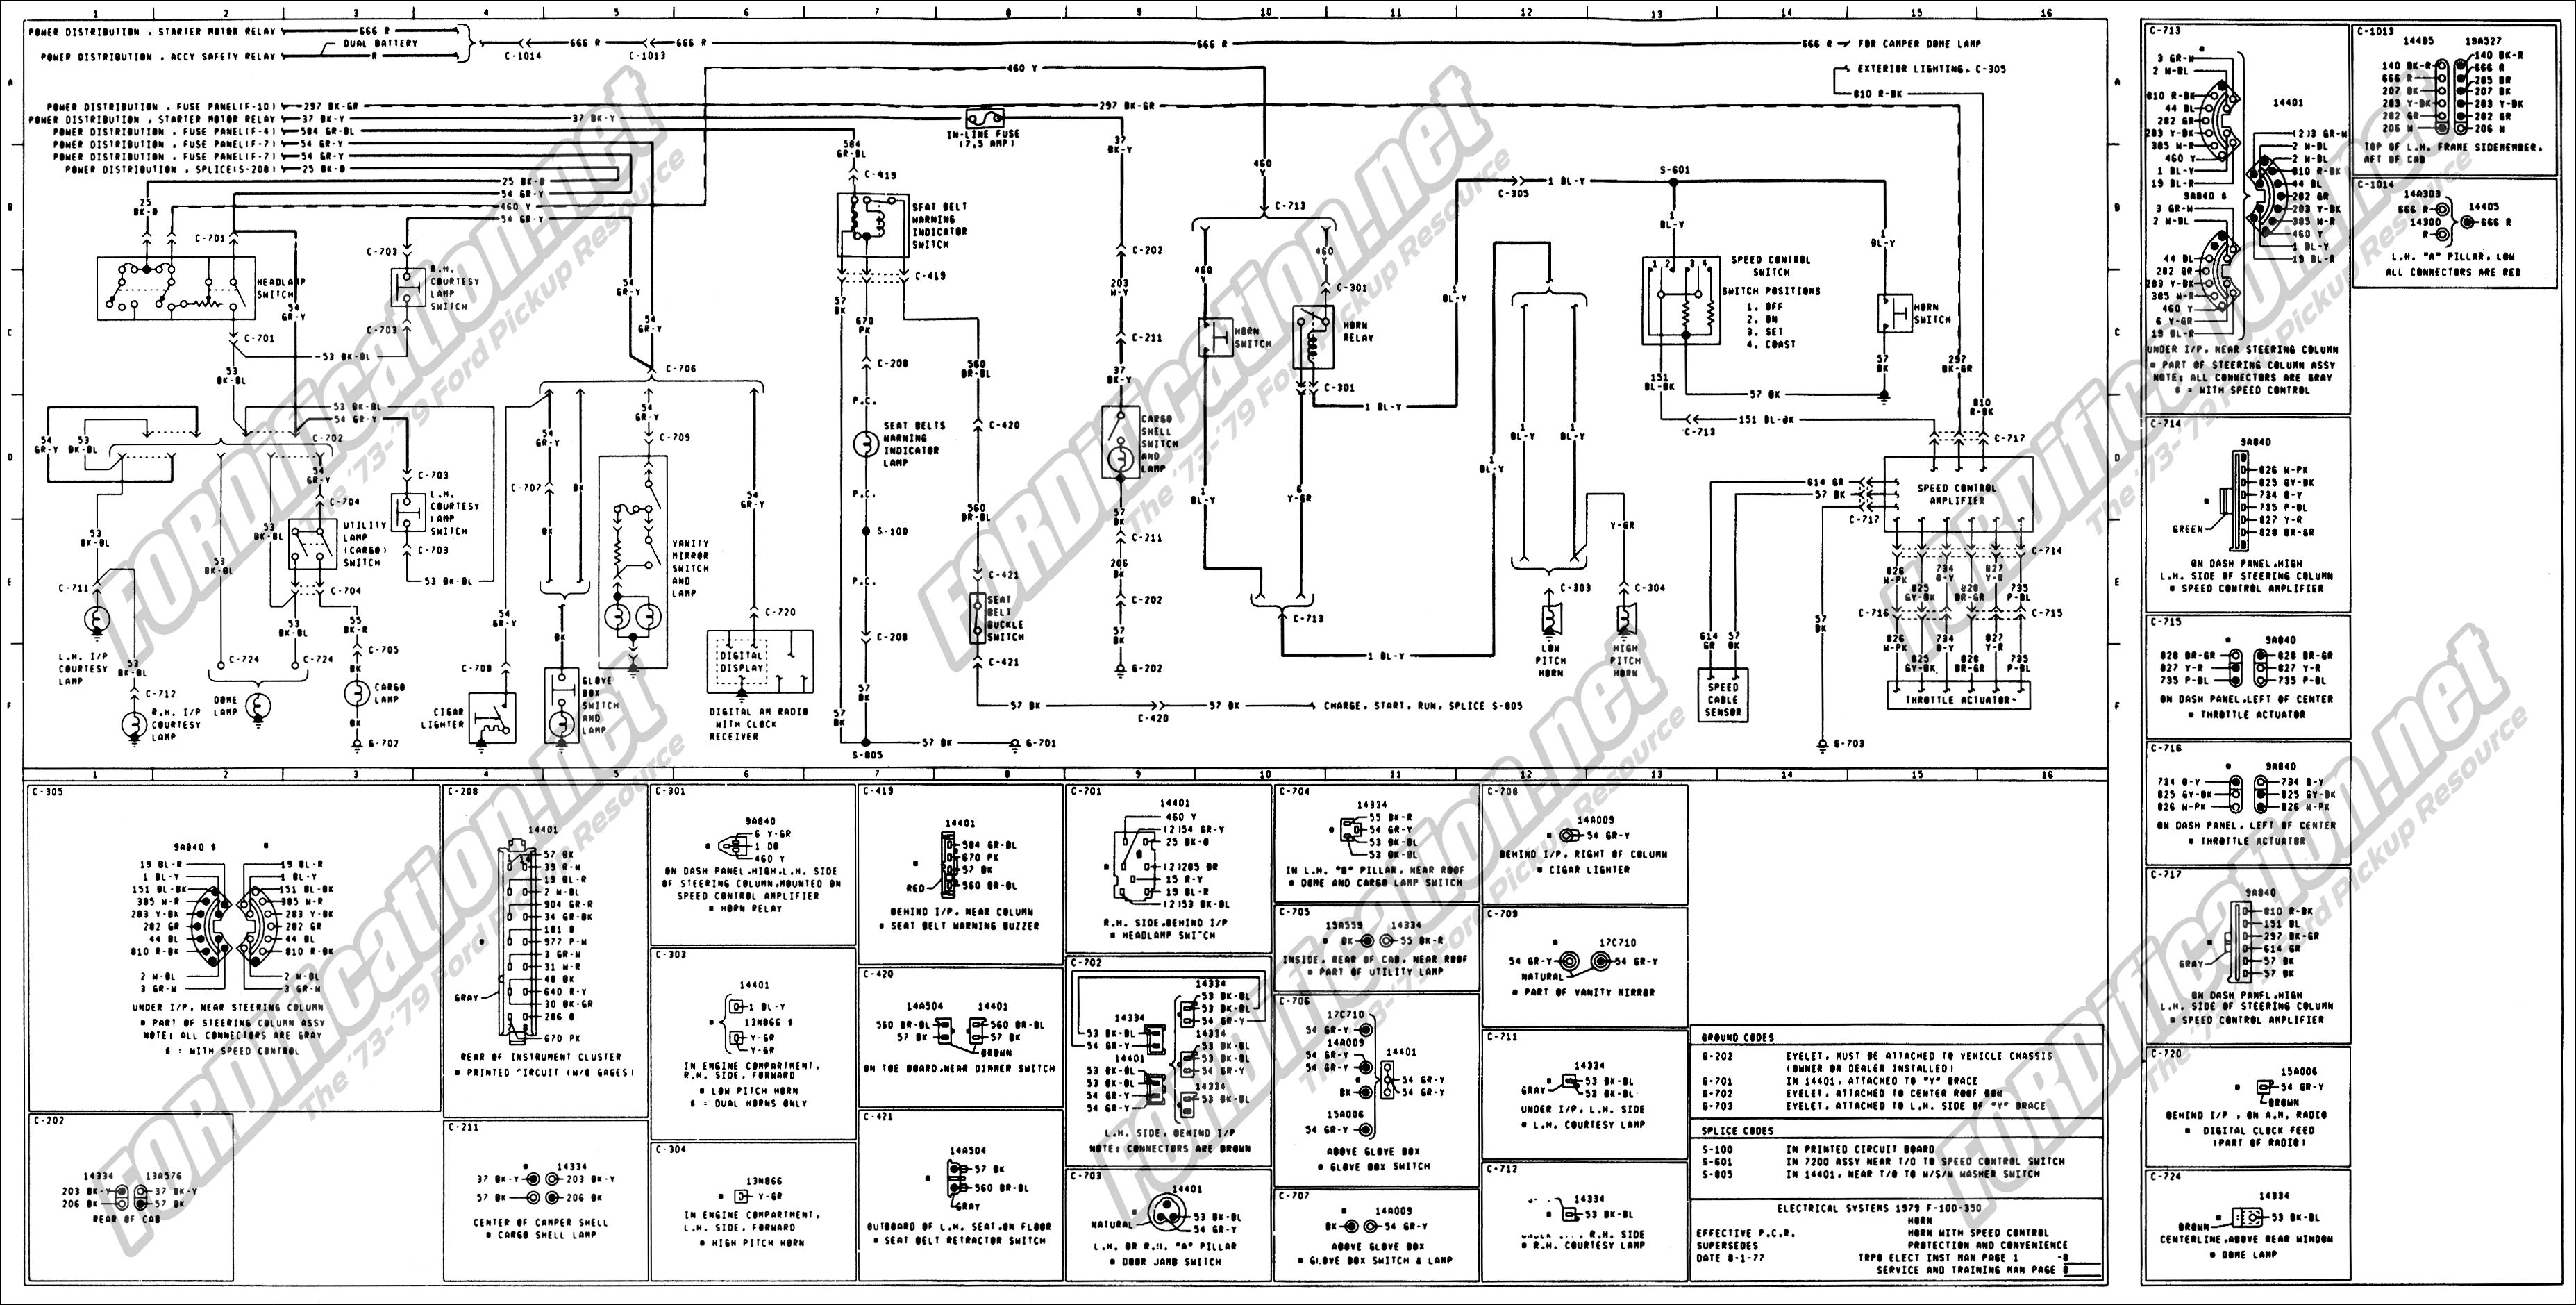 wiring_79master_8of9 1973 1979 ford truck wiring diagrams & schematics fordification net 1984 bronco wiring diagram at alyssarenee.co